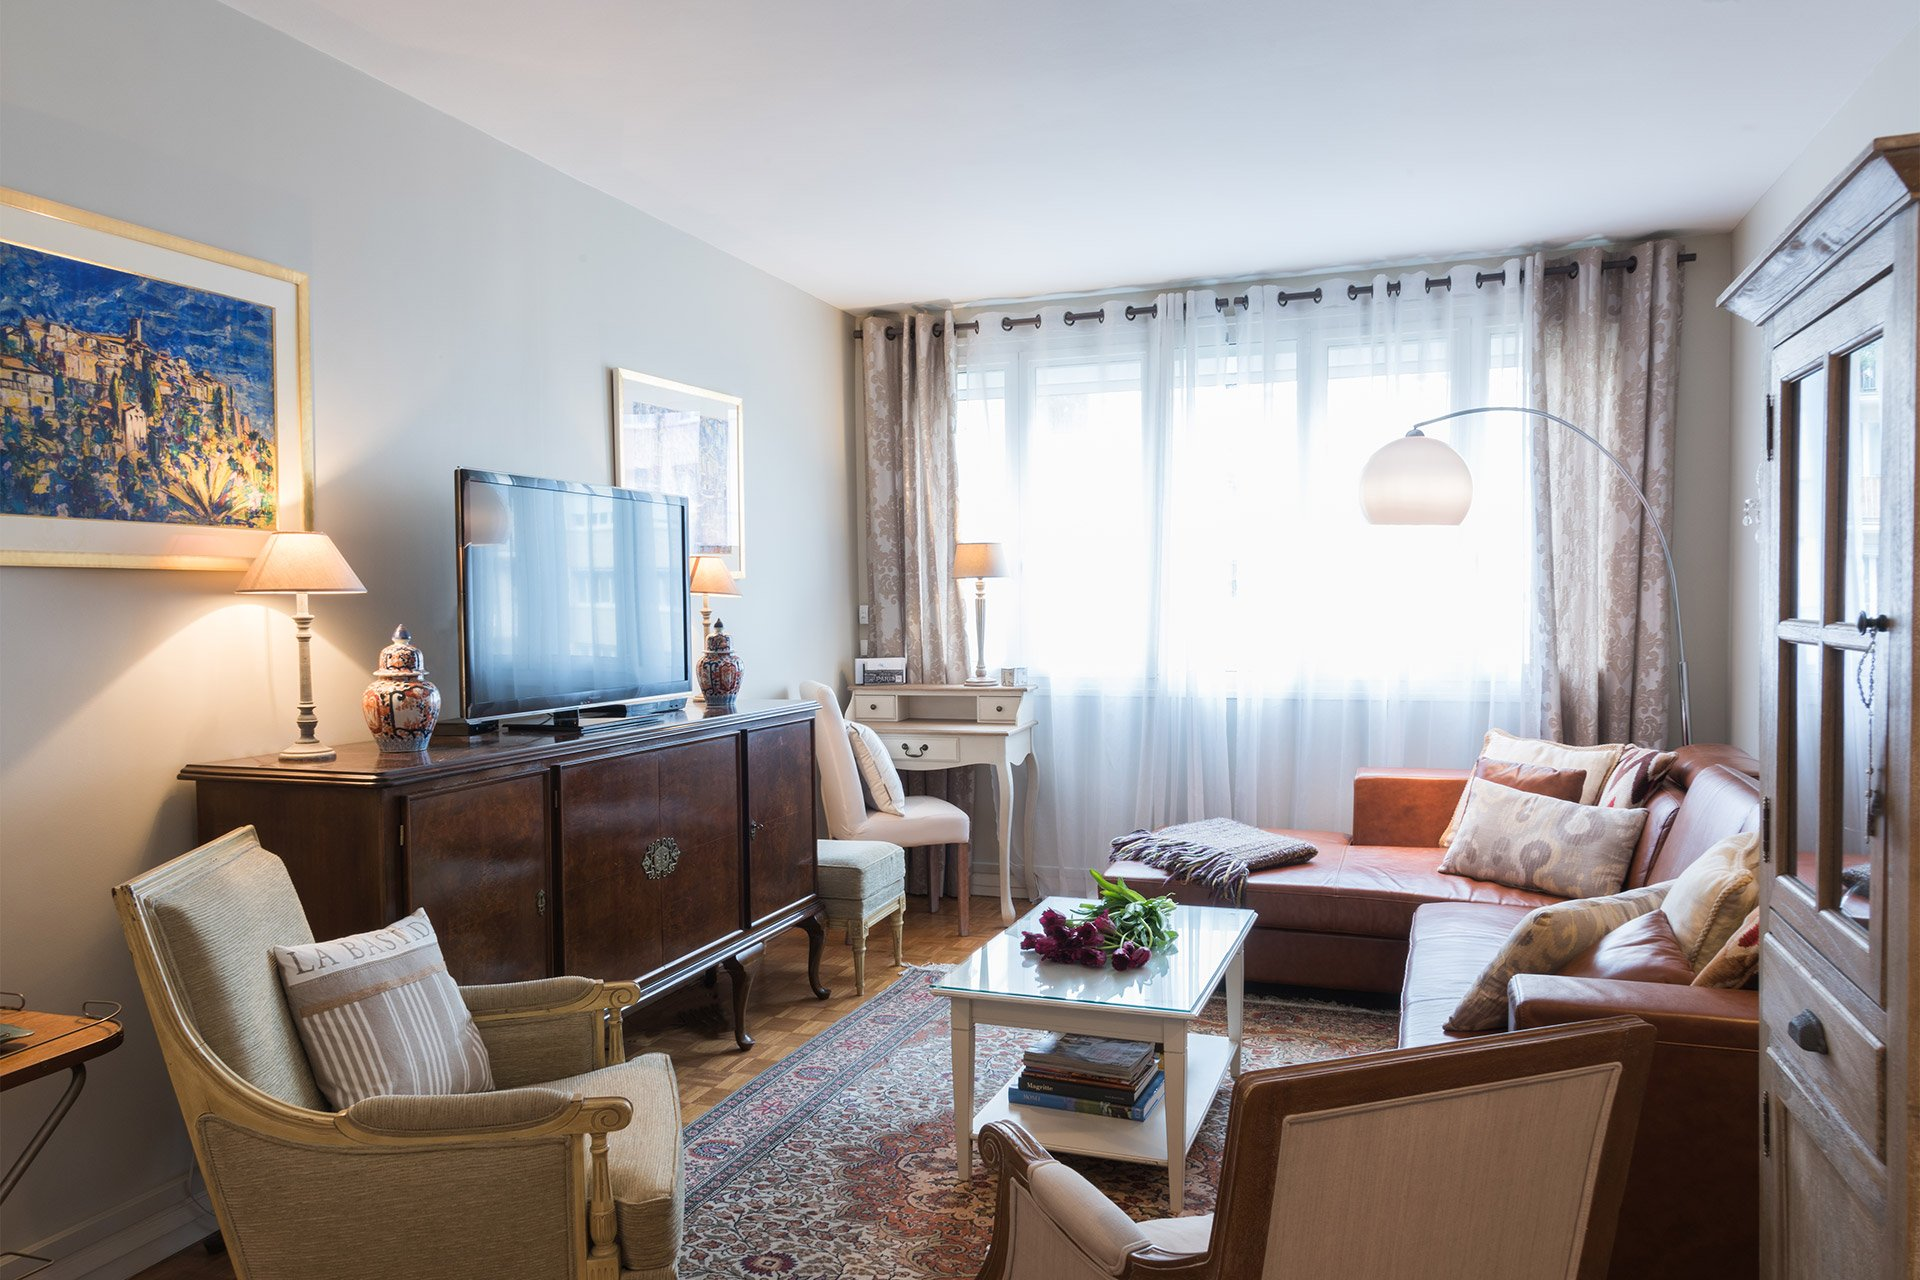 Two Bedroom Apartment for Rent in 15th Arrondissement Paris